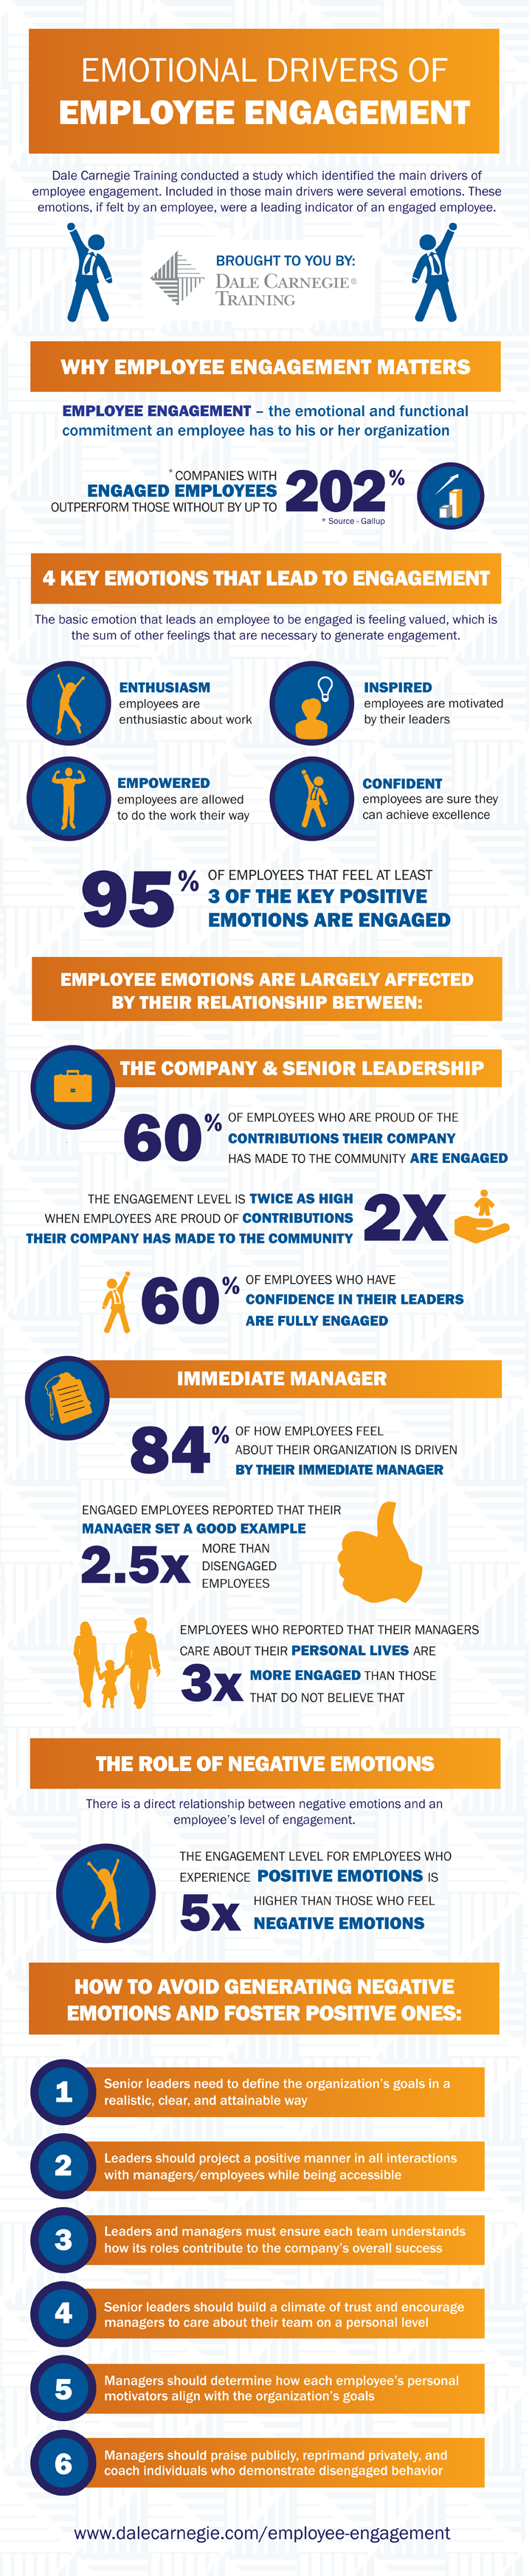 How to Engage Employees by Fostering Positive Emotions Infographics